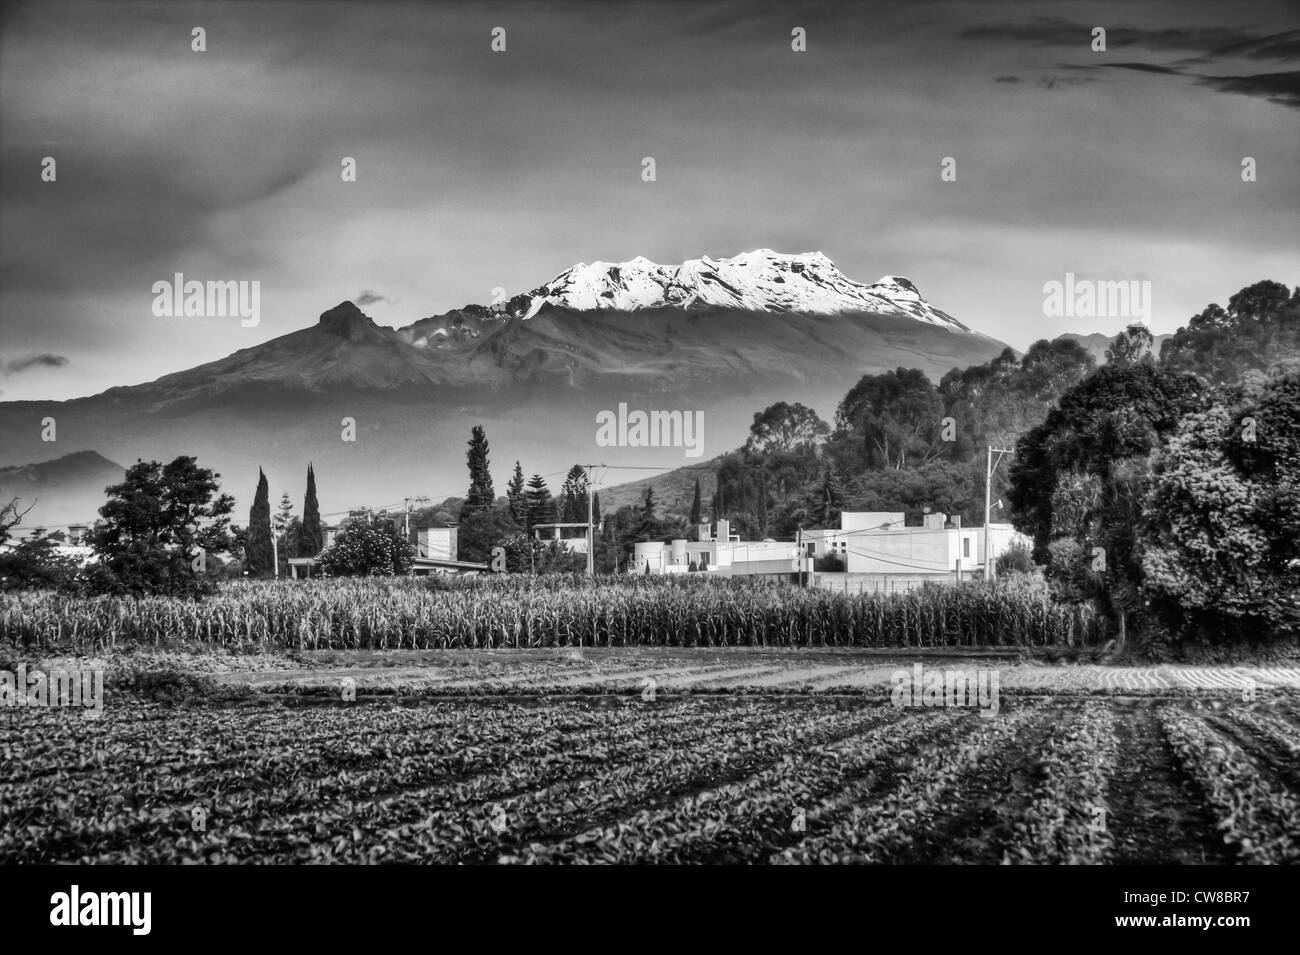 Mt. Iztaccihuatl Volcano in Mexico - Stock Image